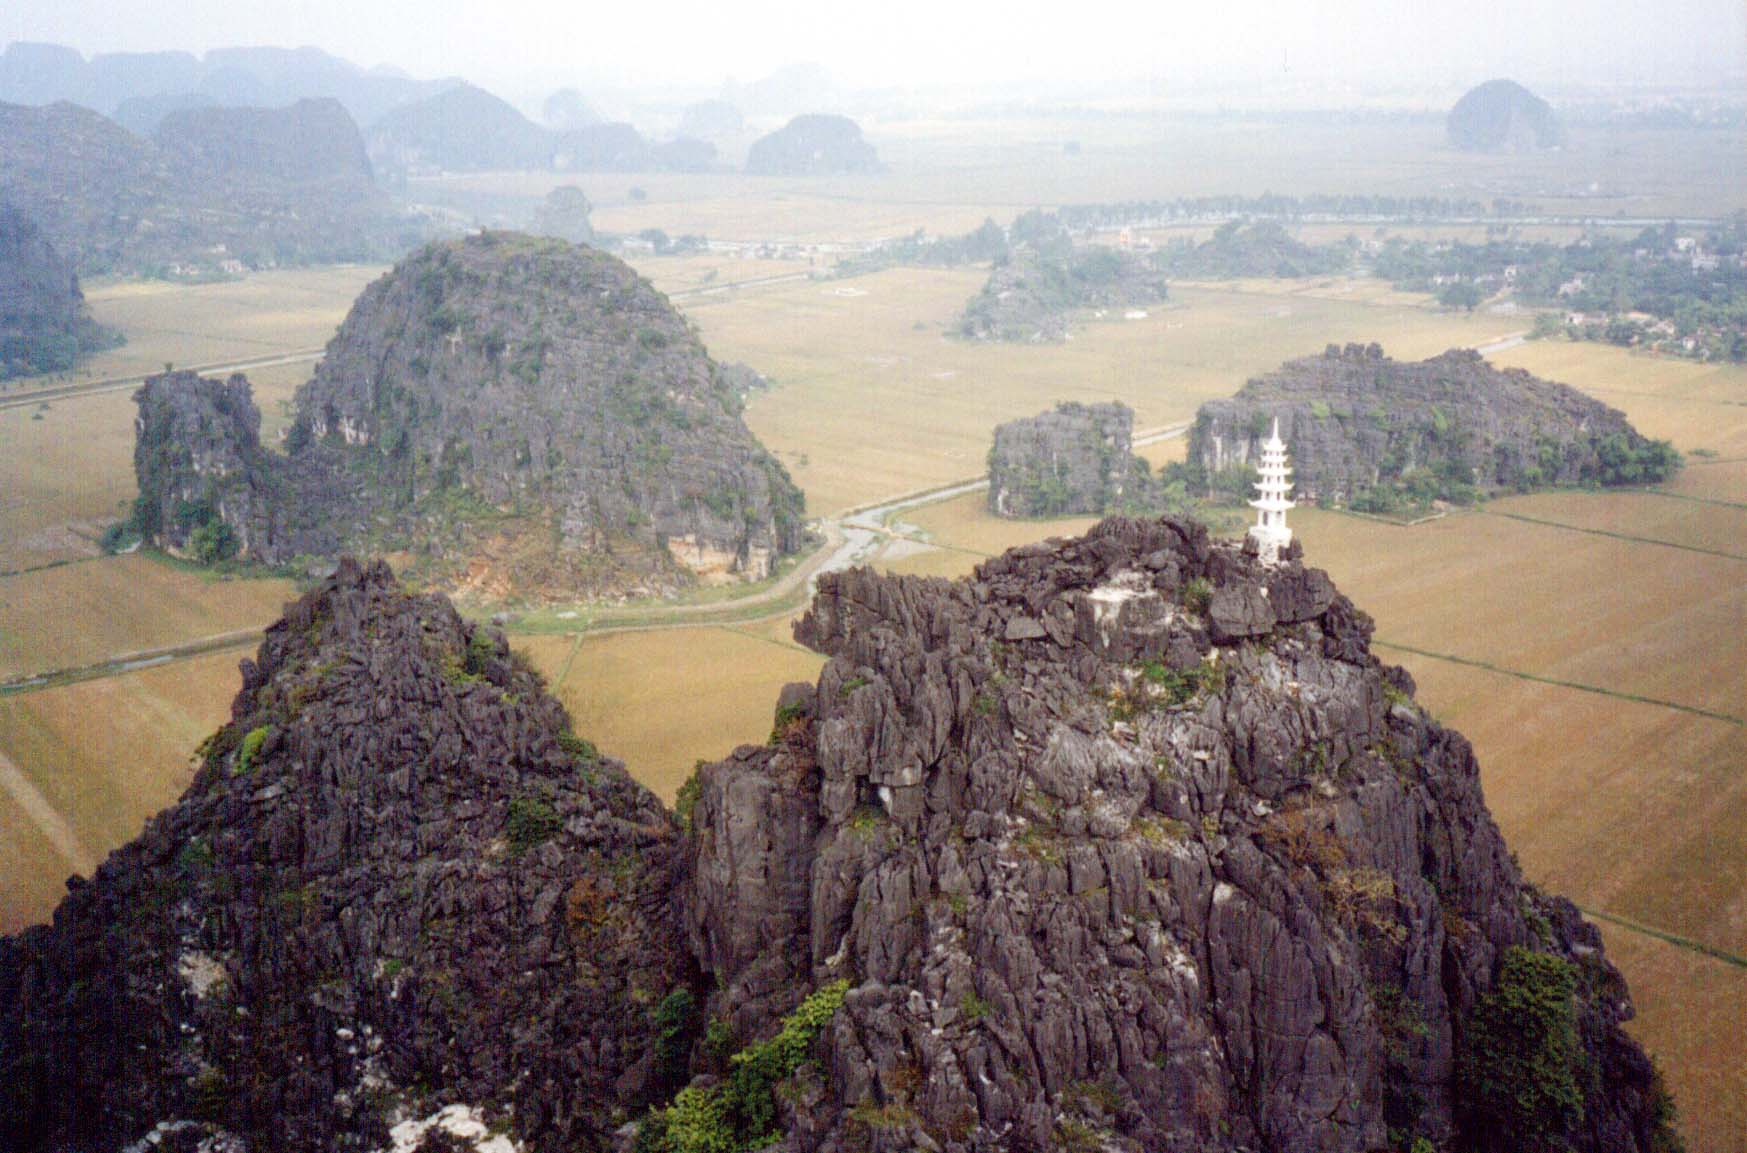 Looking out to a 'sea' of karsts from the top of Hang Mua (Ninh Binh, Vietnam) - Page 116